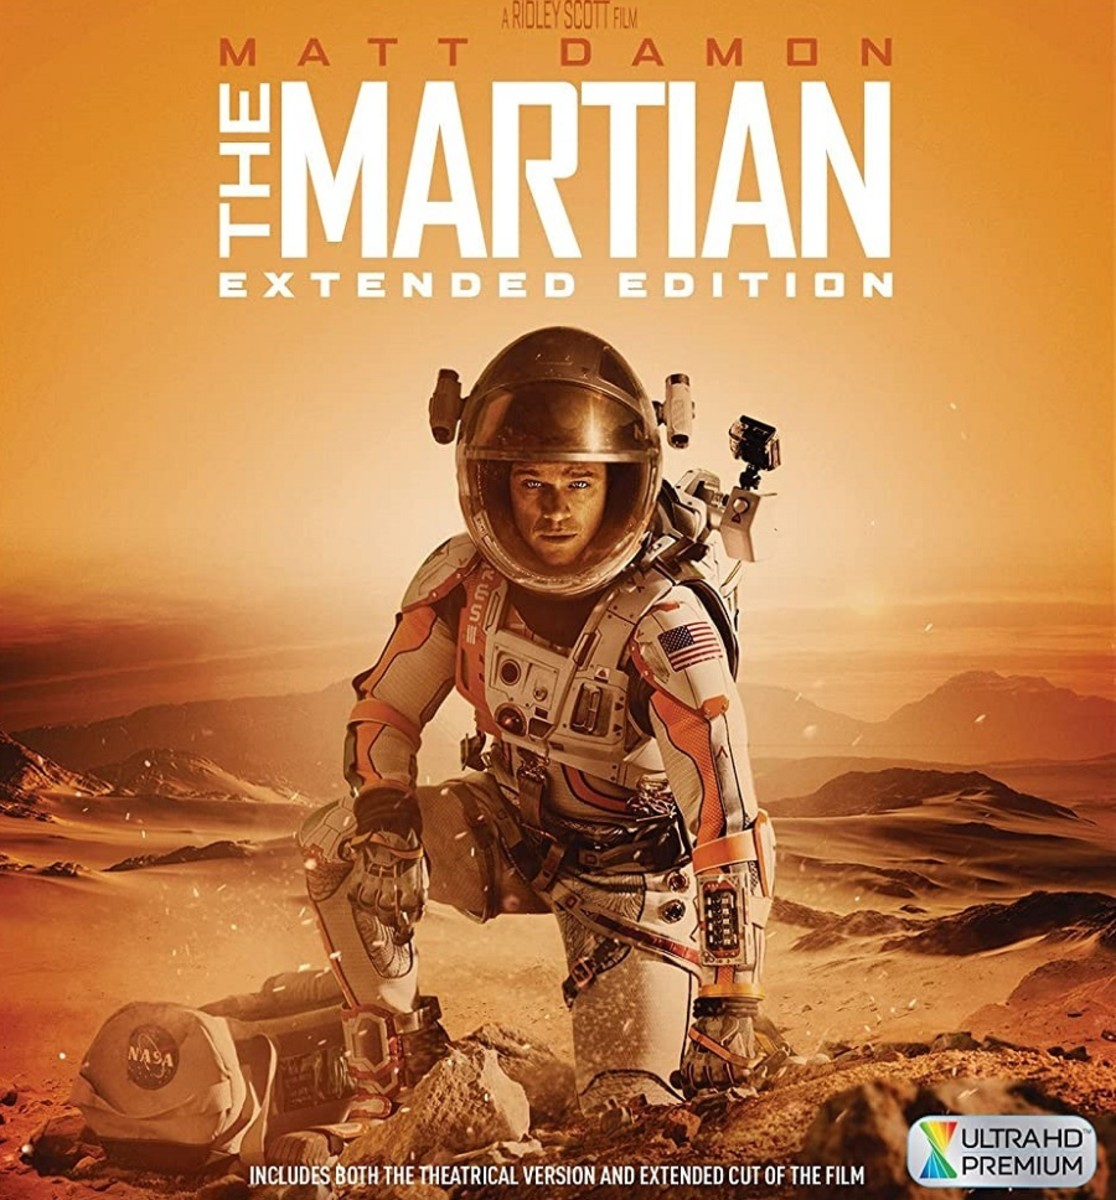 The Martian - An Excellent Space Adventure Film